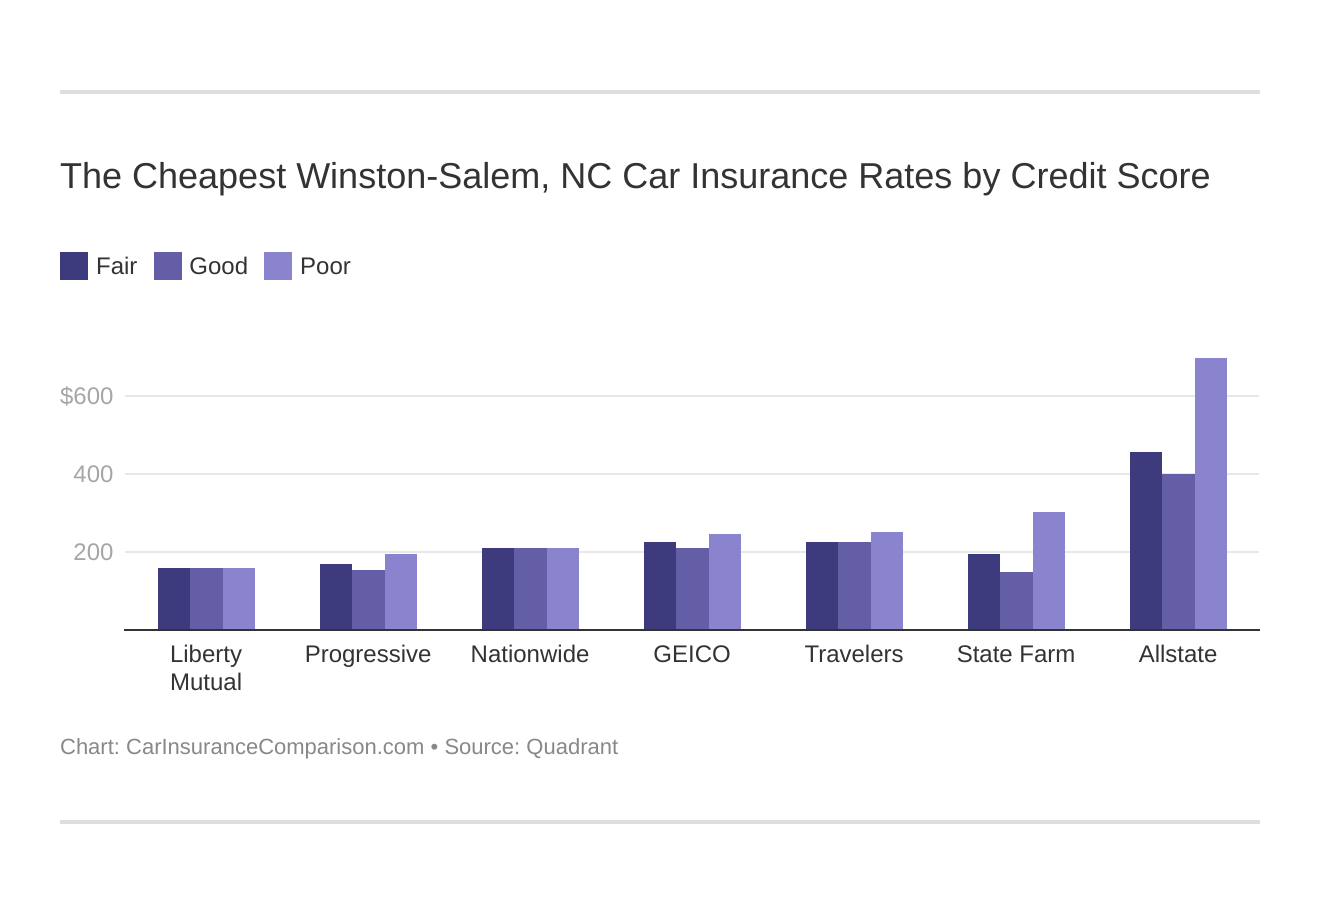 The Cheapest Winston-Salem, NC Car Insurance Rates by Credit Score